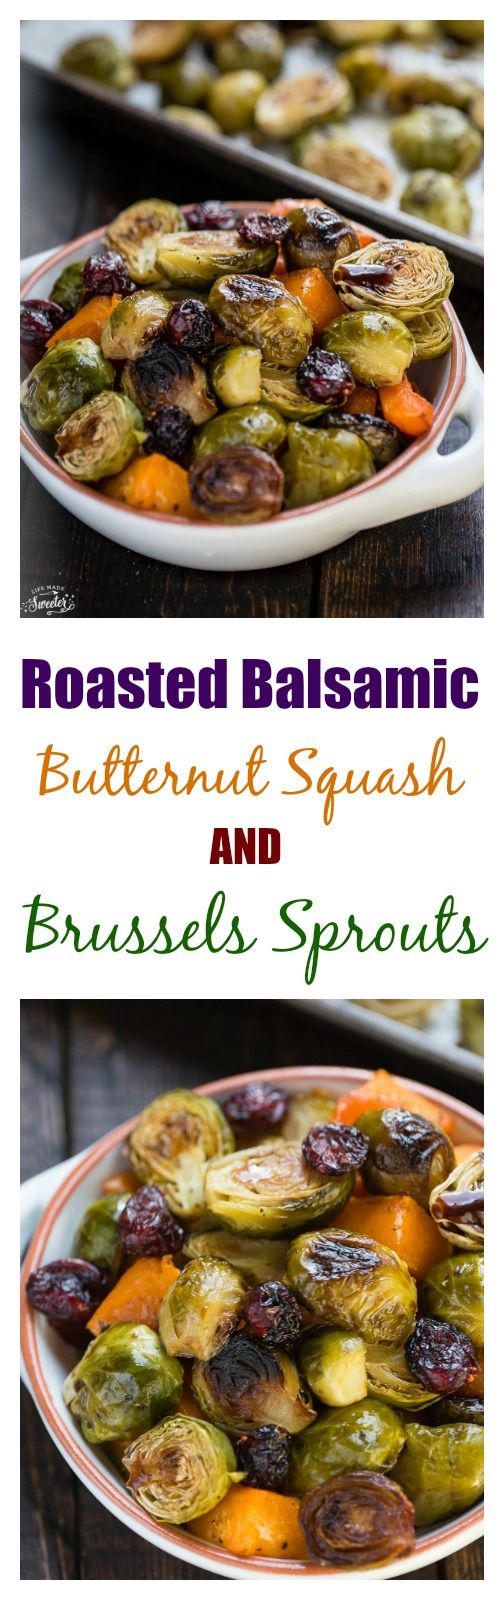 Balsamic Roasted Butternut Squash & Brussels Sprouts make an easy side dish